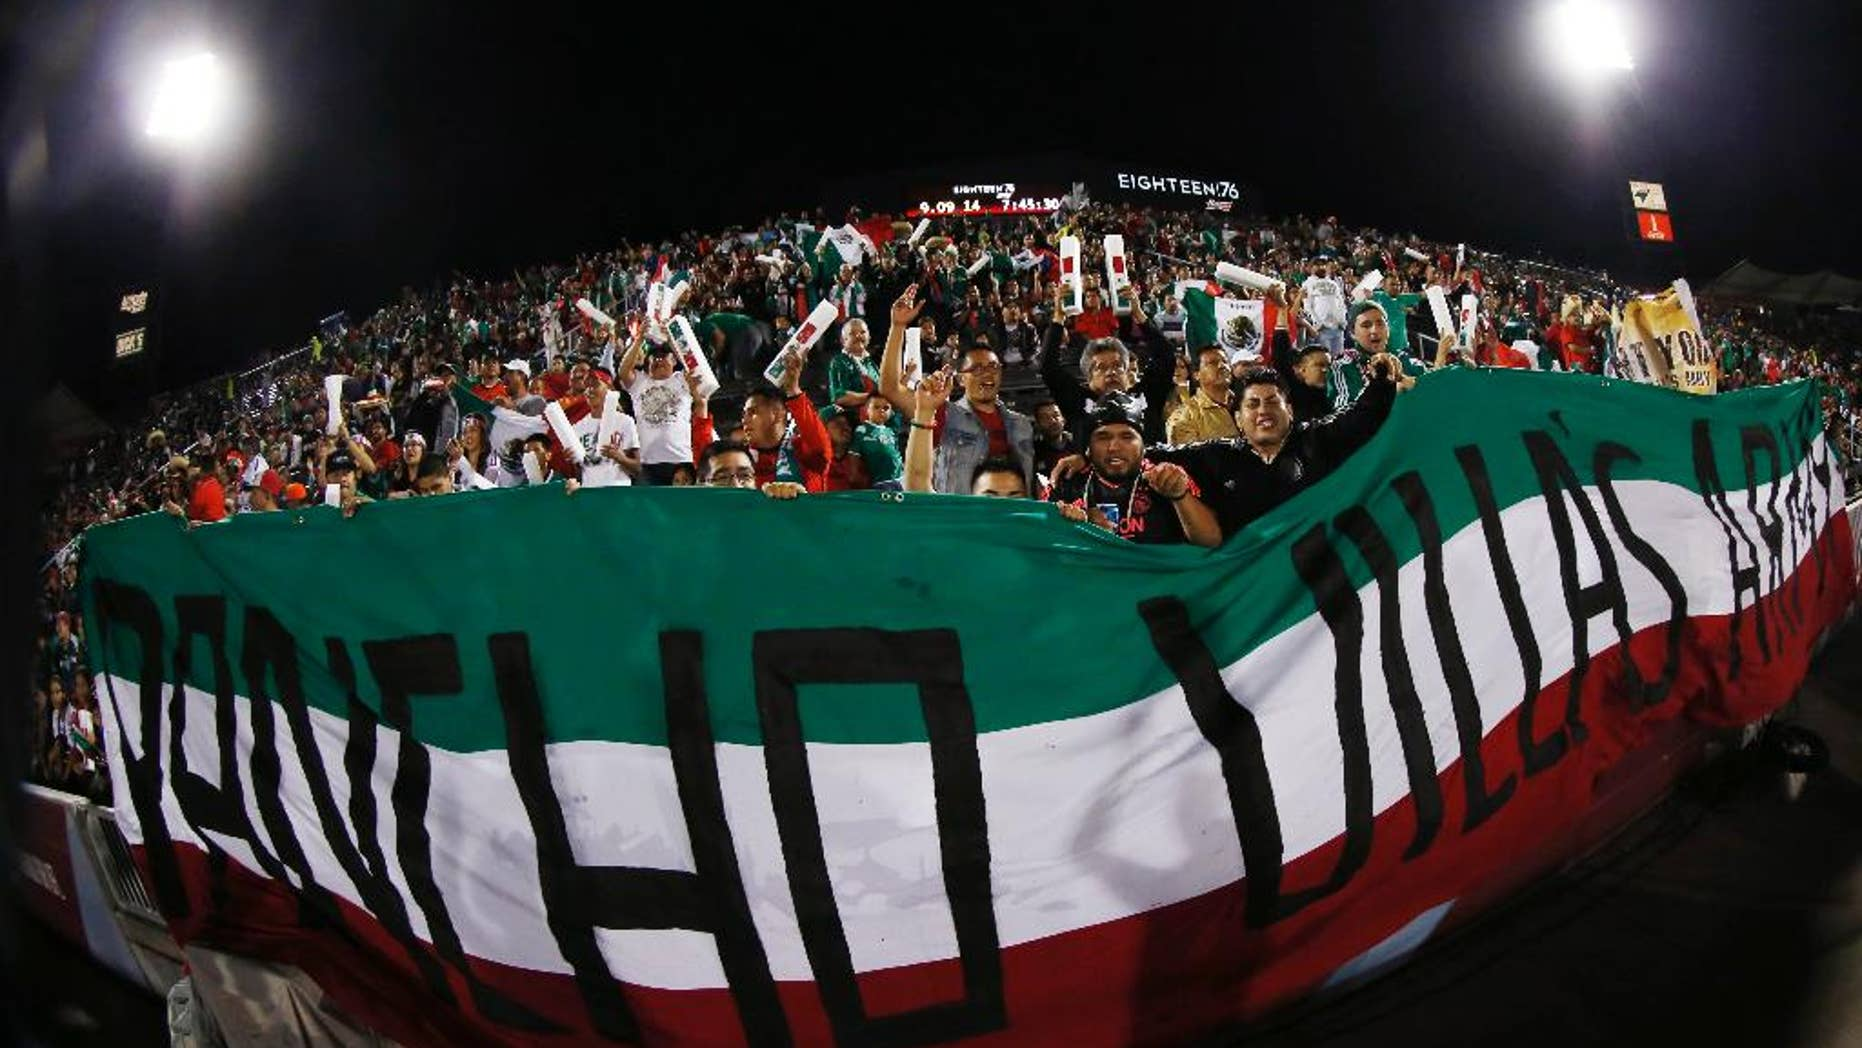 In a photo take with a fisheye lens, fans celebrate as members of the Mexico national team take the field before a 1-0 victory over Bolivia in an international friendly soccer game in Commerce City, Colo., on Tuesday, Sept. 9, 2014. (AP Photo/David Zalubowski)